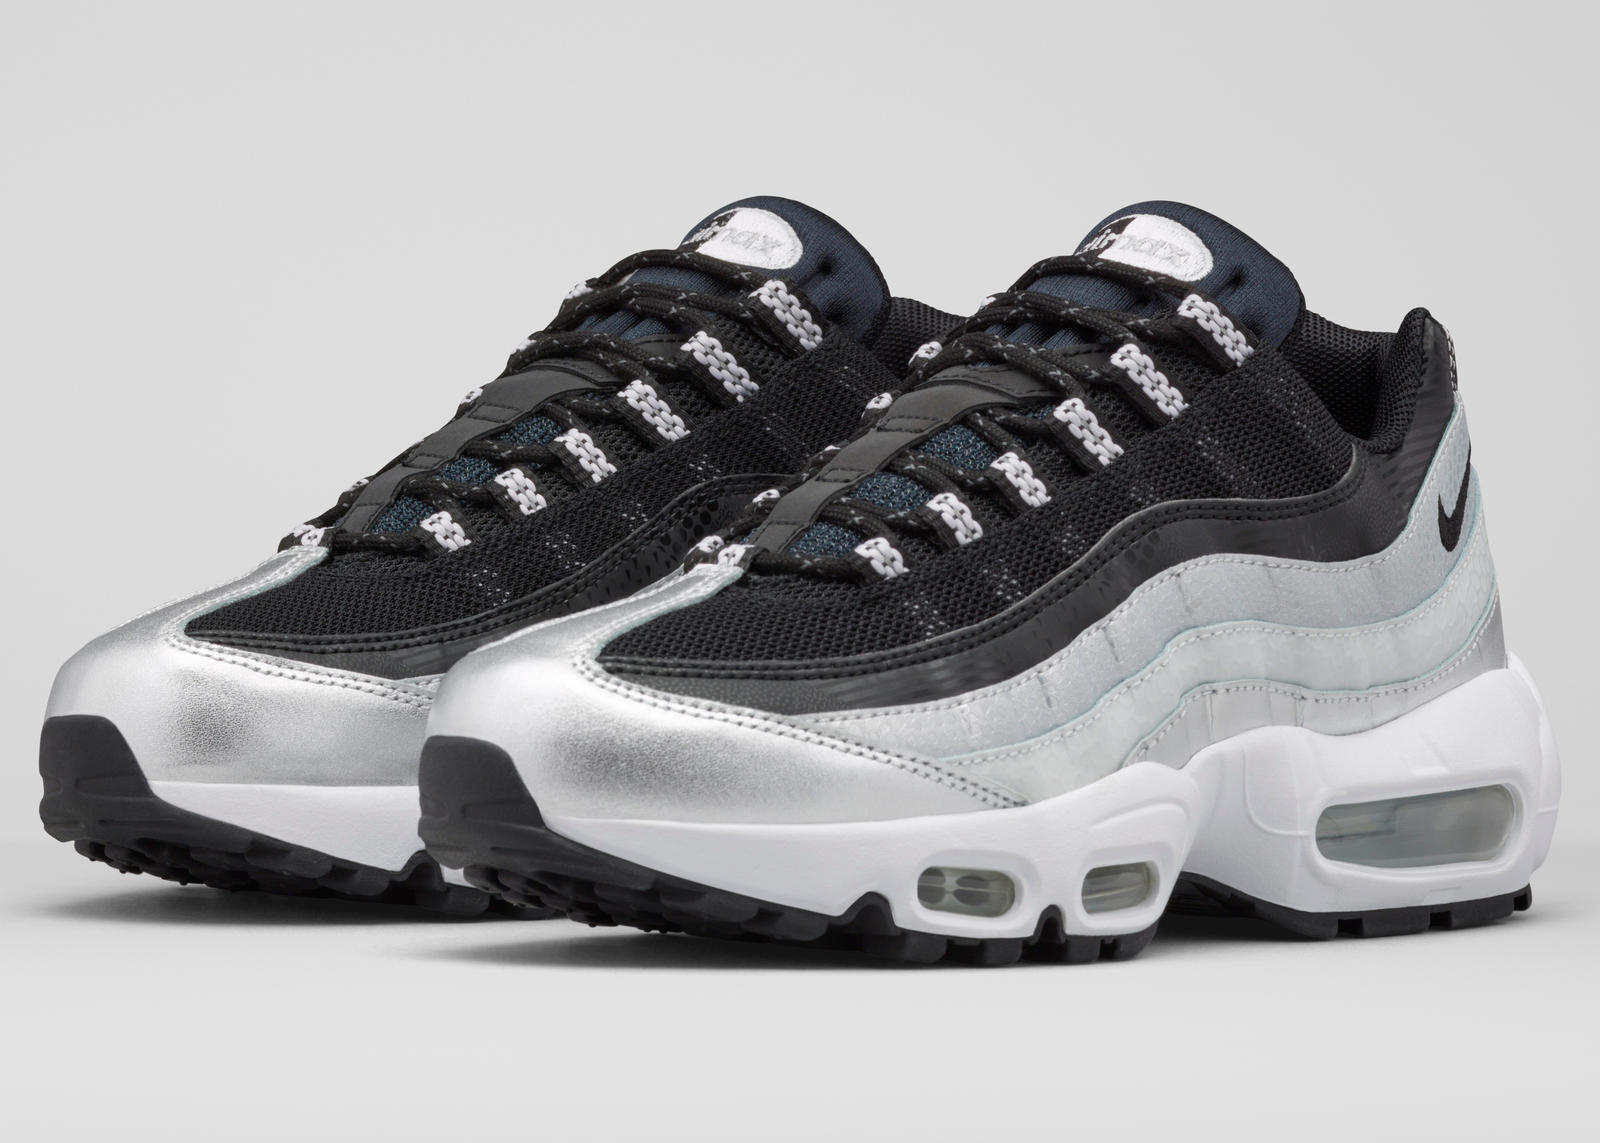 wholesale dealer 4847e 1b9af Already Platinum The Air Max 95s 20th Anniversary Style - Ni